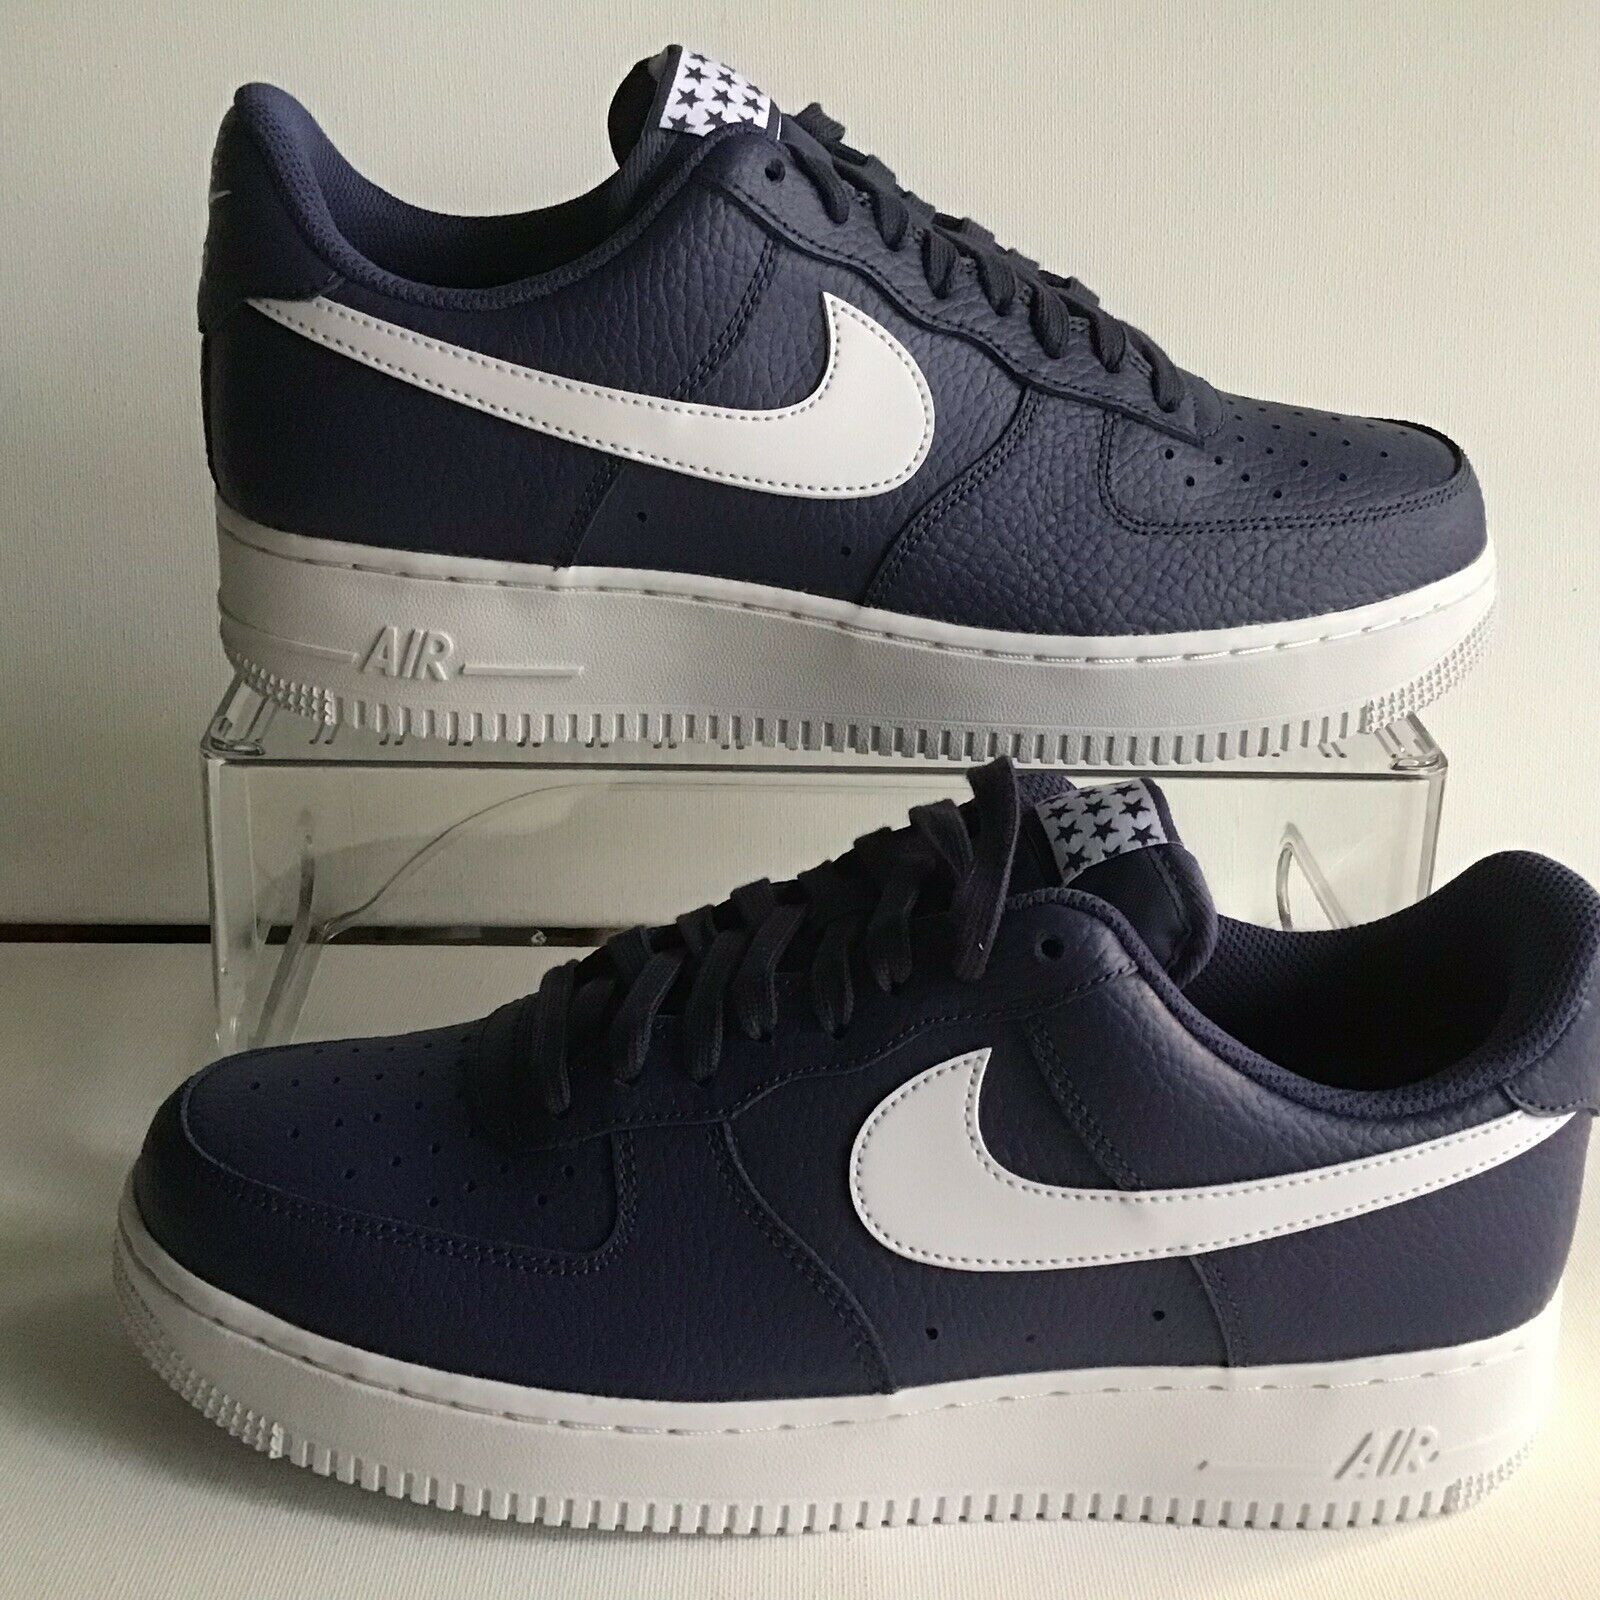 Nike Air Force 1 '07 Low  bluee Recall White Mns.Sz.9=Wmns.10.5 (AA4083 401)